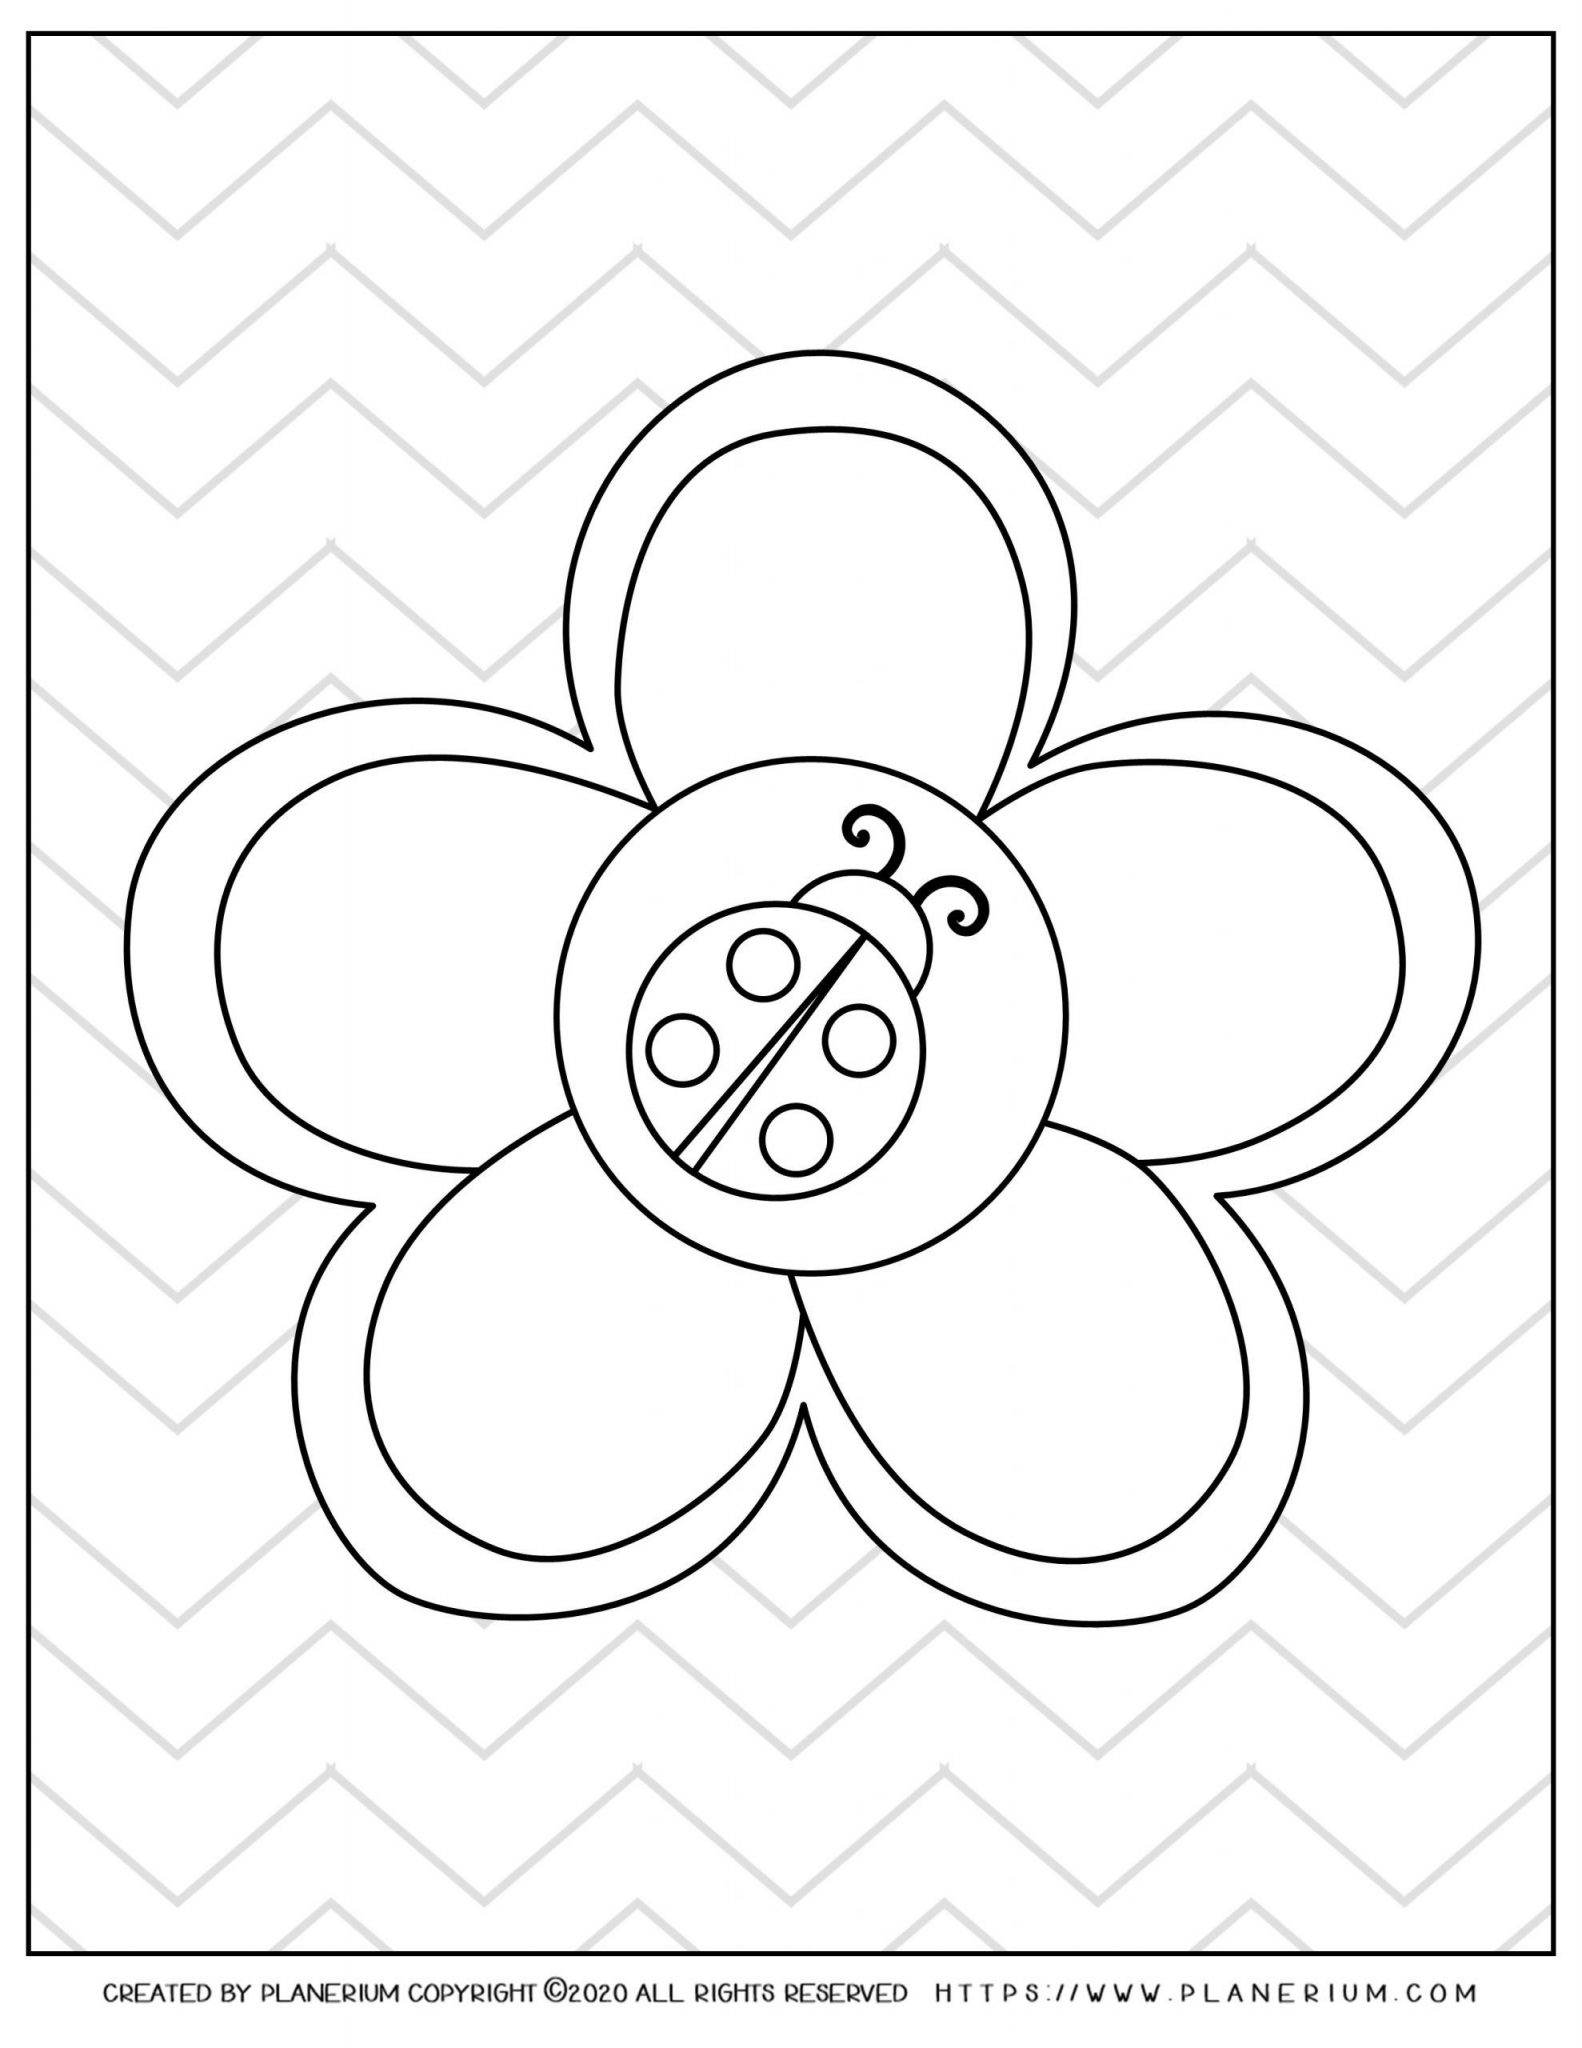 Spring coloring page - Ladybug on a flower and zigzag background